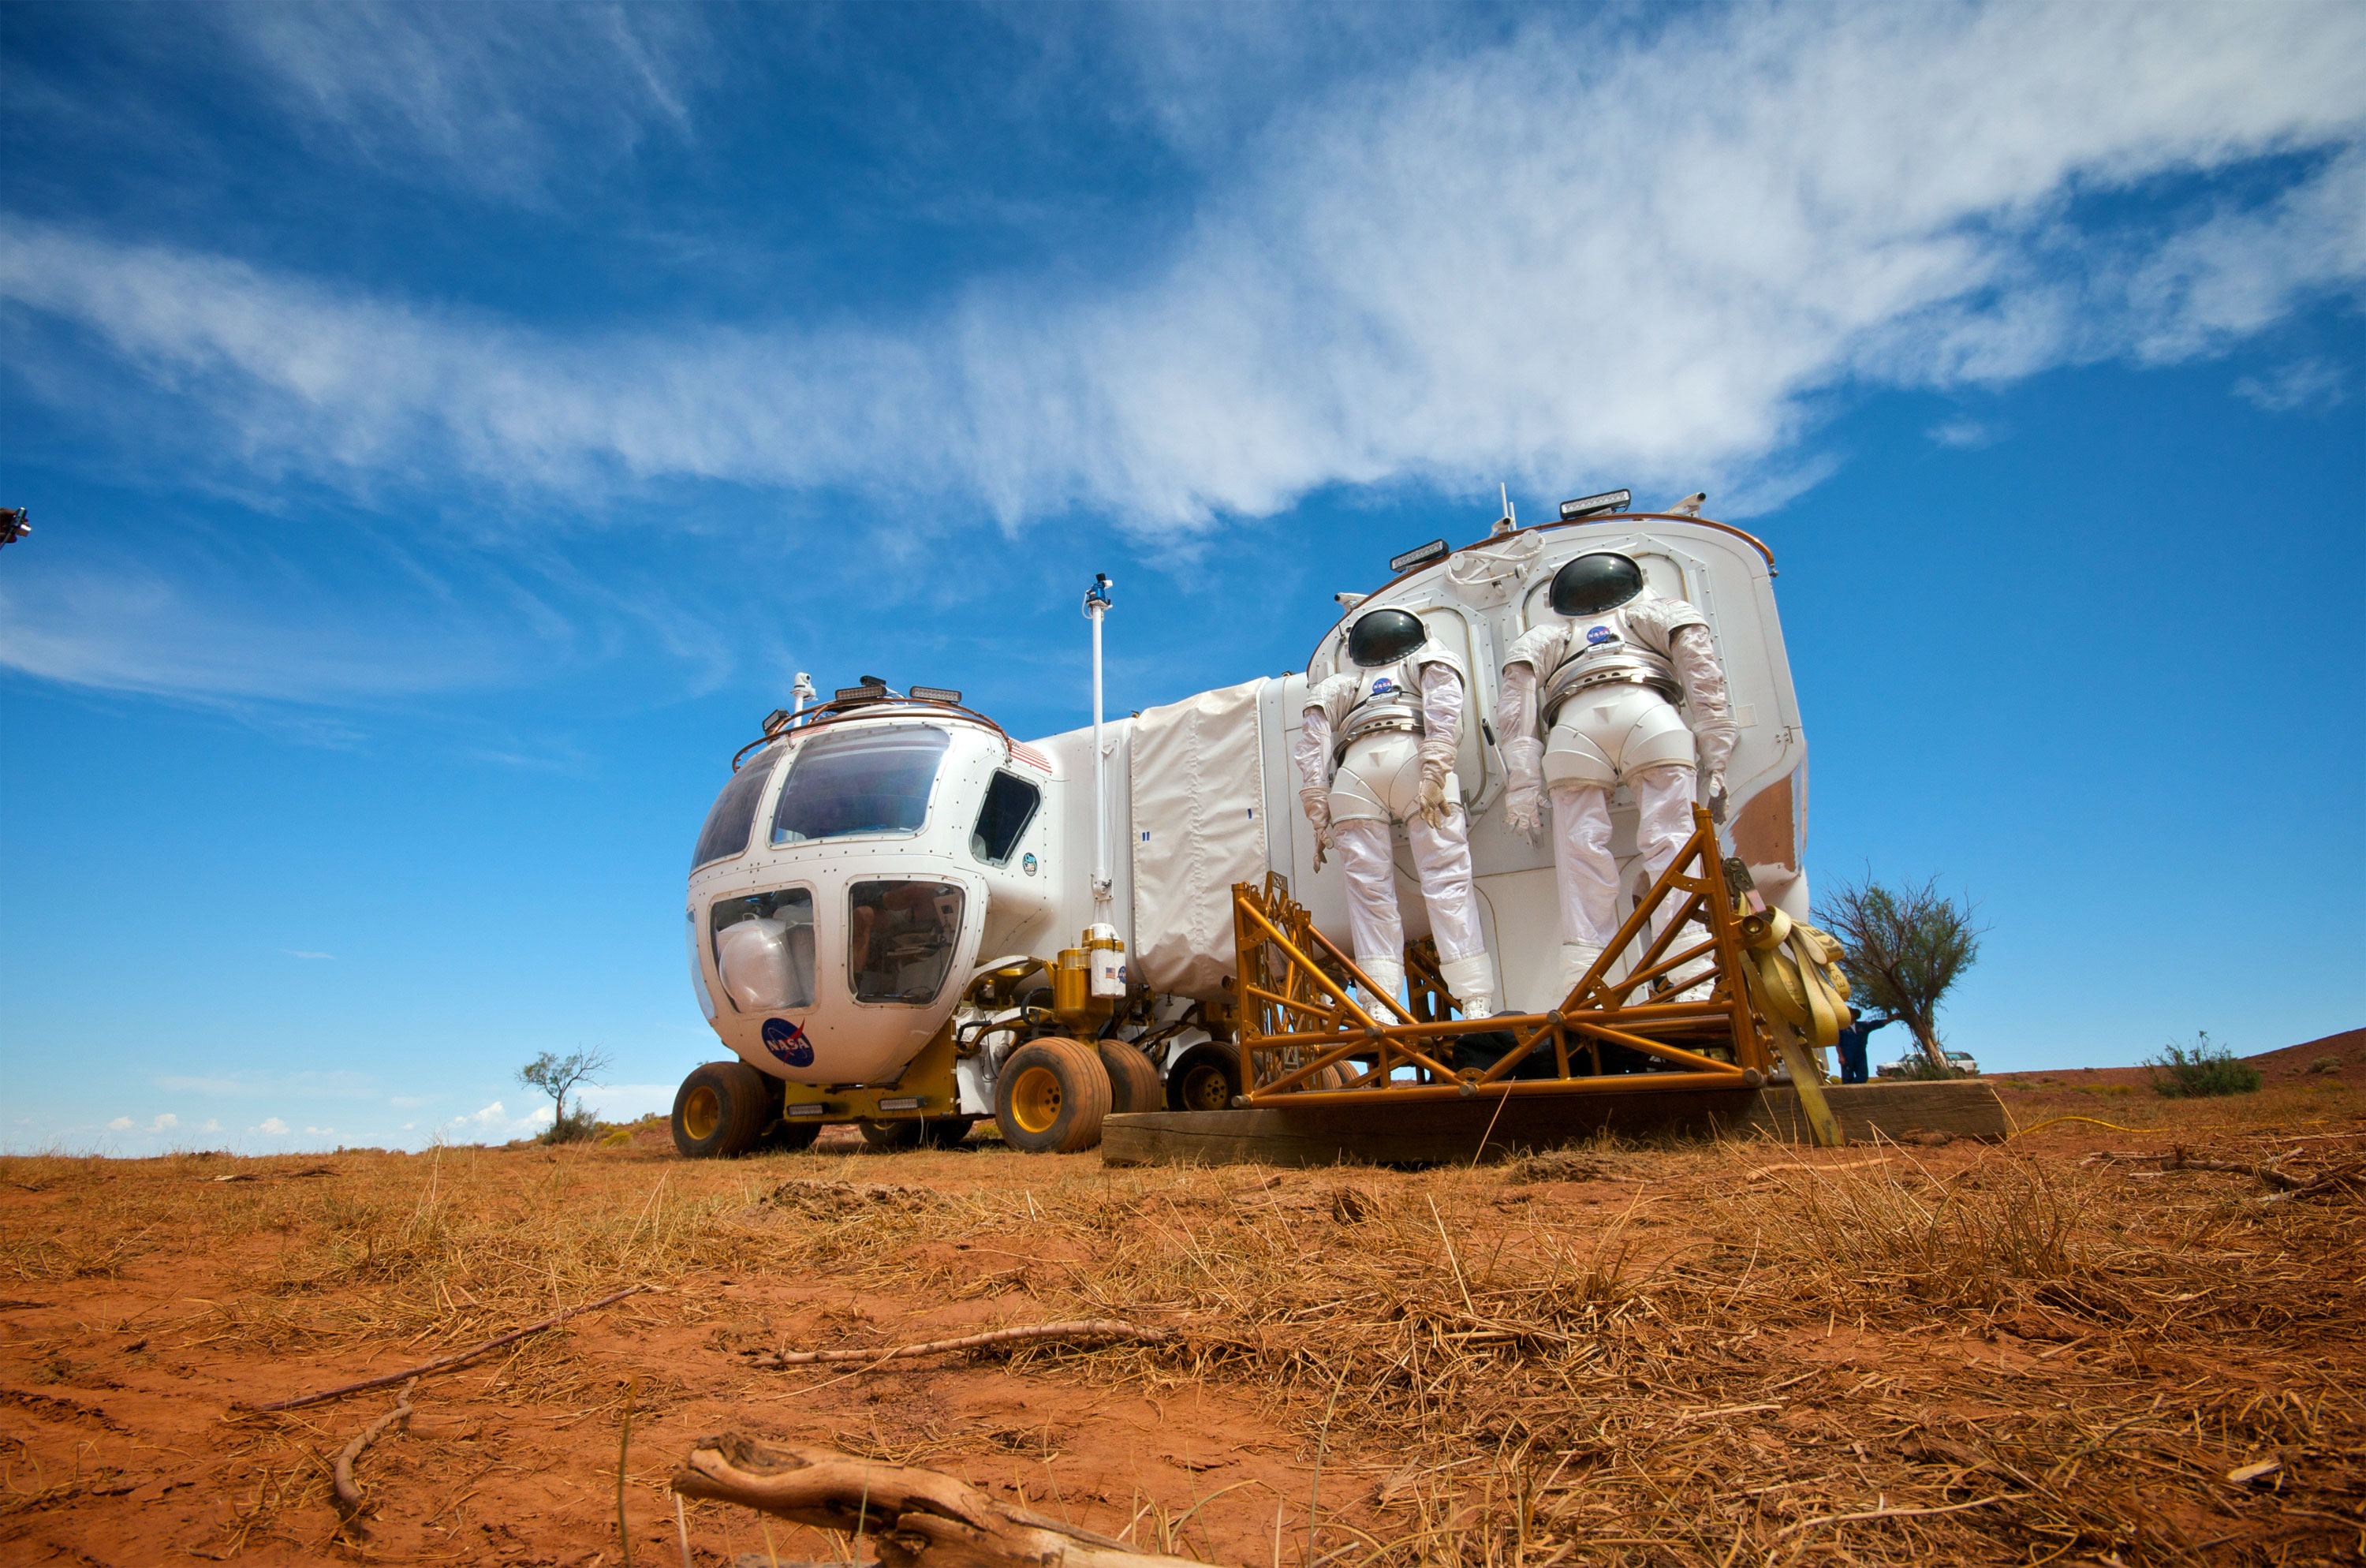 astronaut traveling space vehicle - photo #43